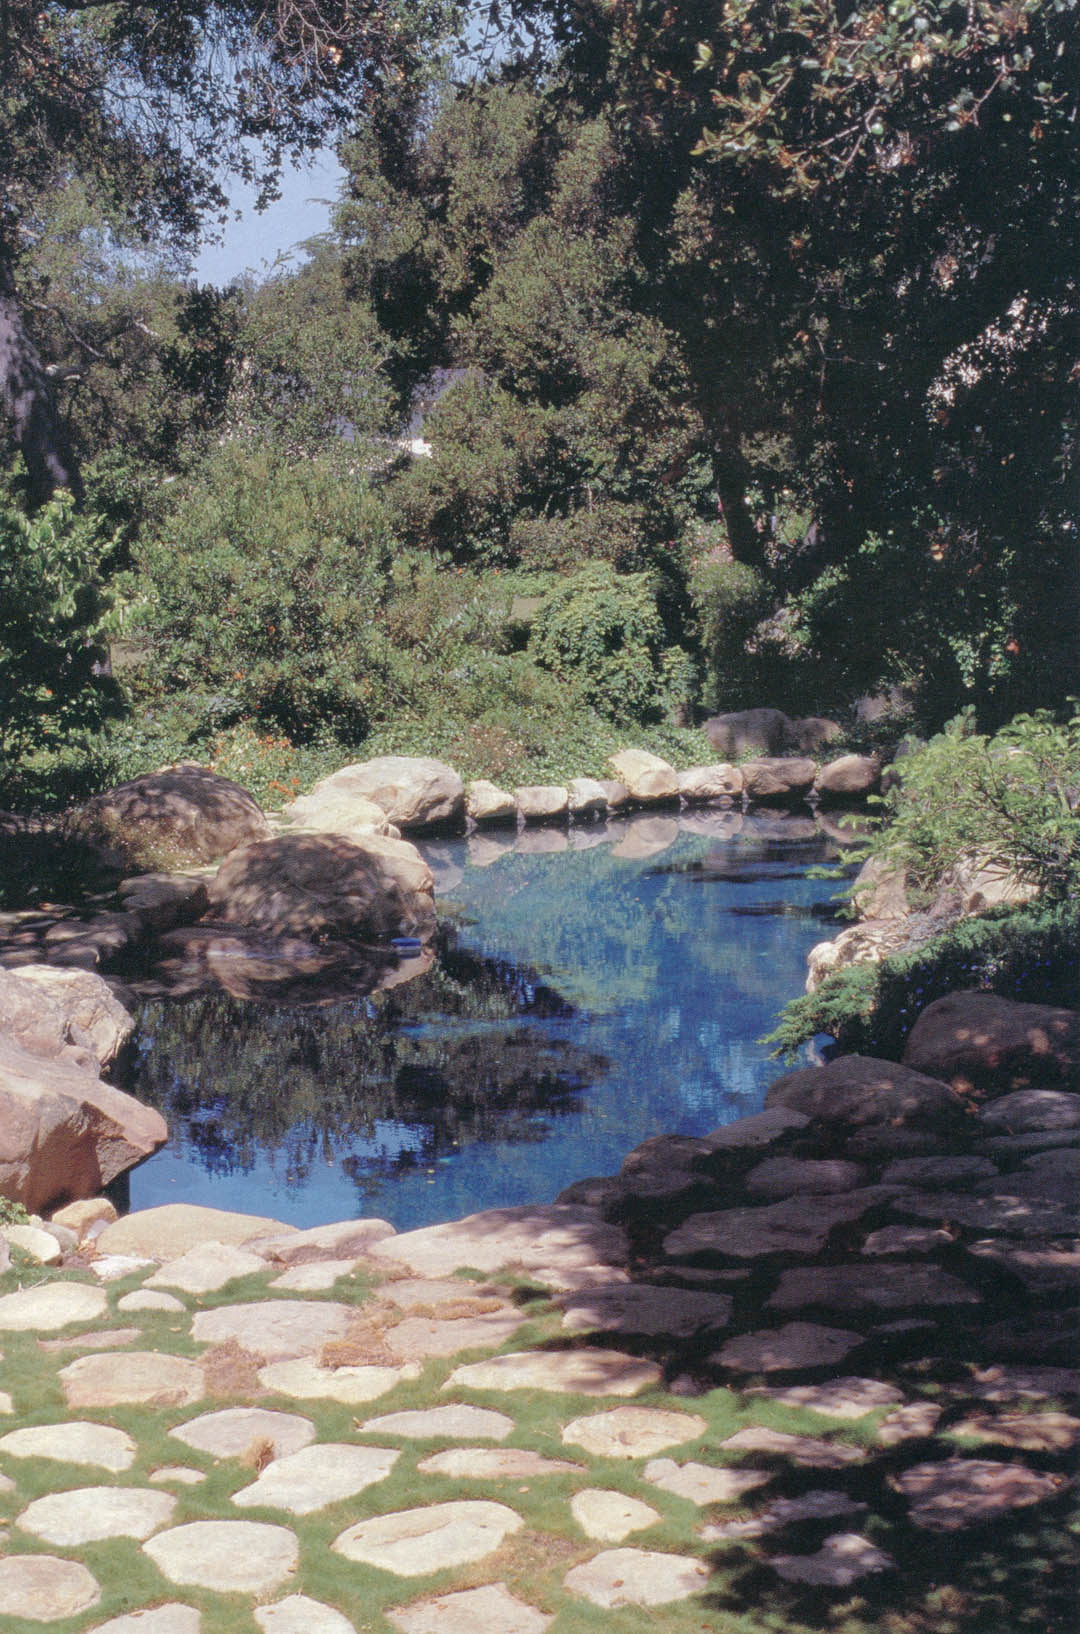 Surrounded By Natural Boulders The Lovelace Swimming Pool Seems To Belong Site